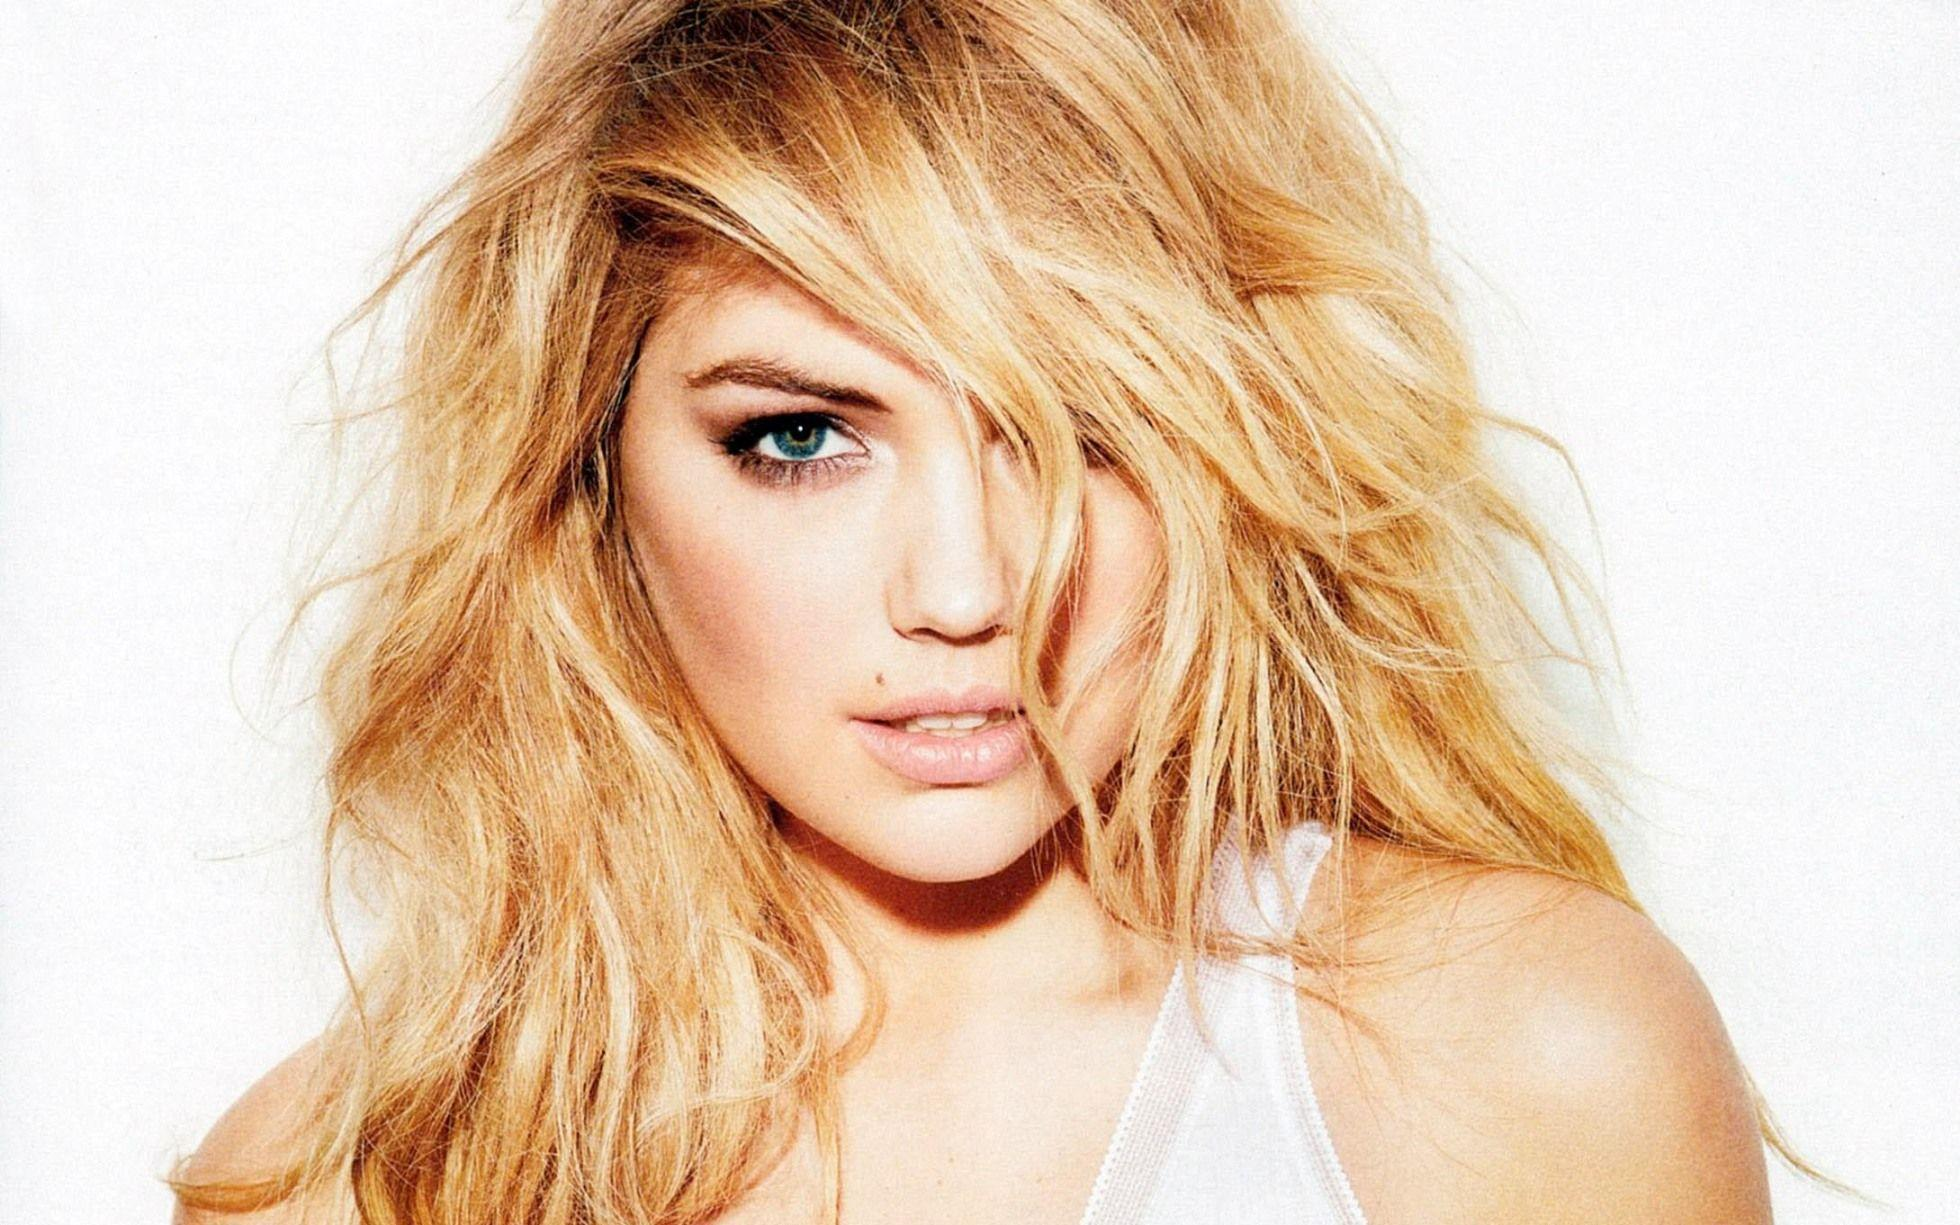 kate upton wallpapers with - photo #16